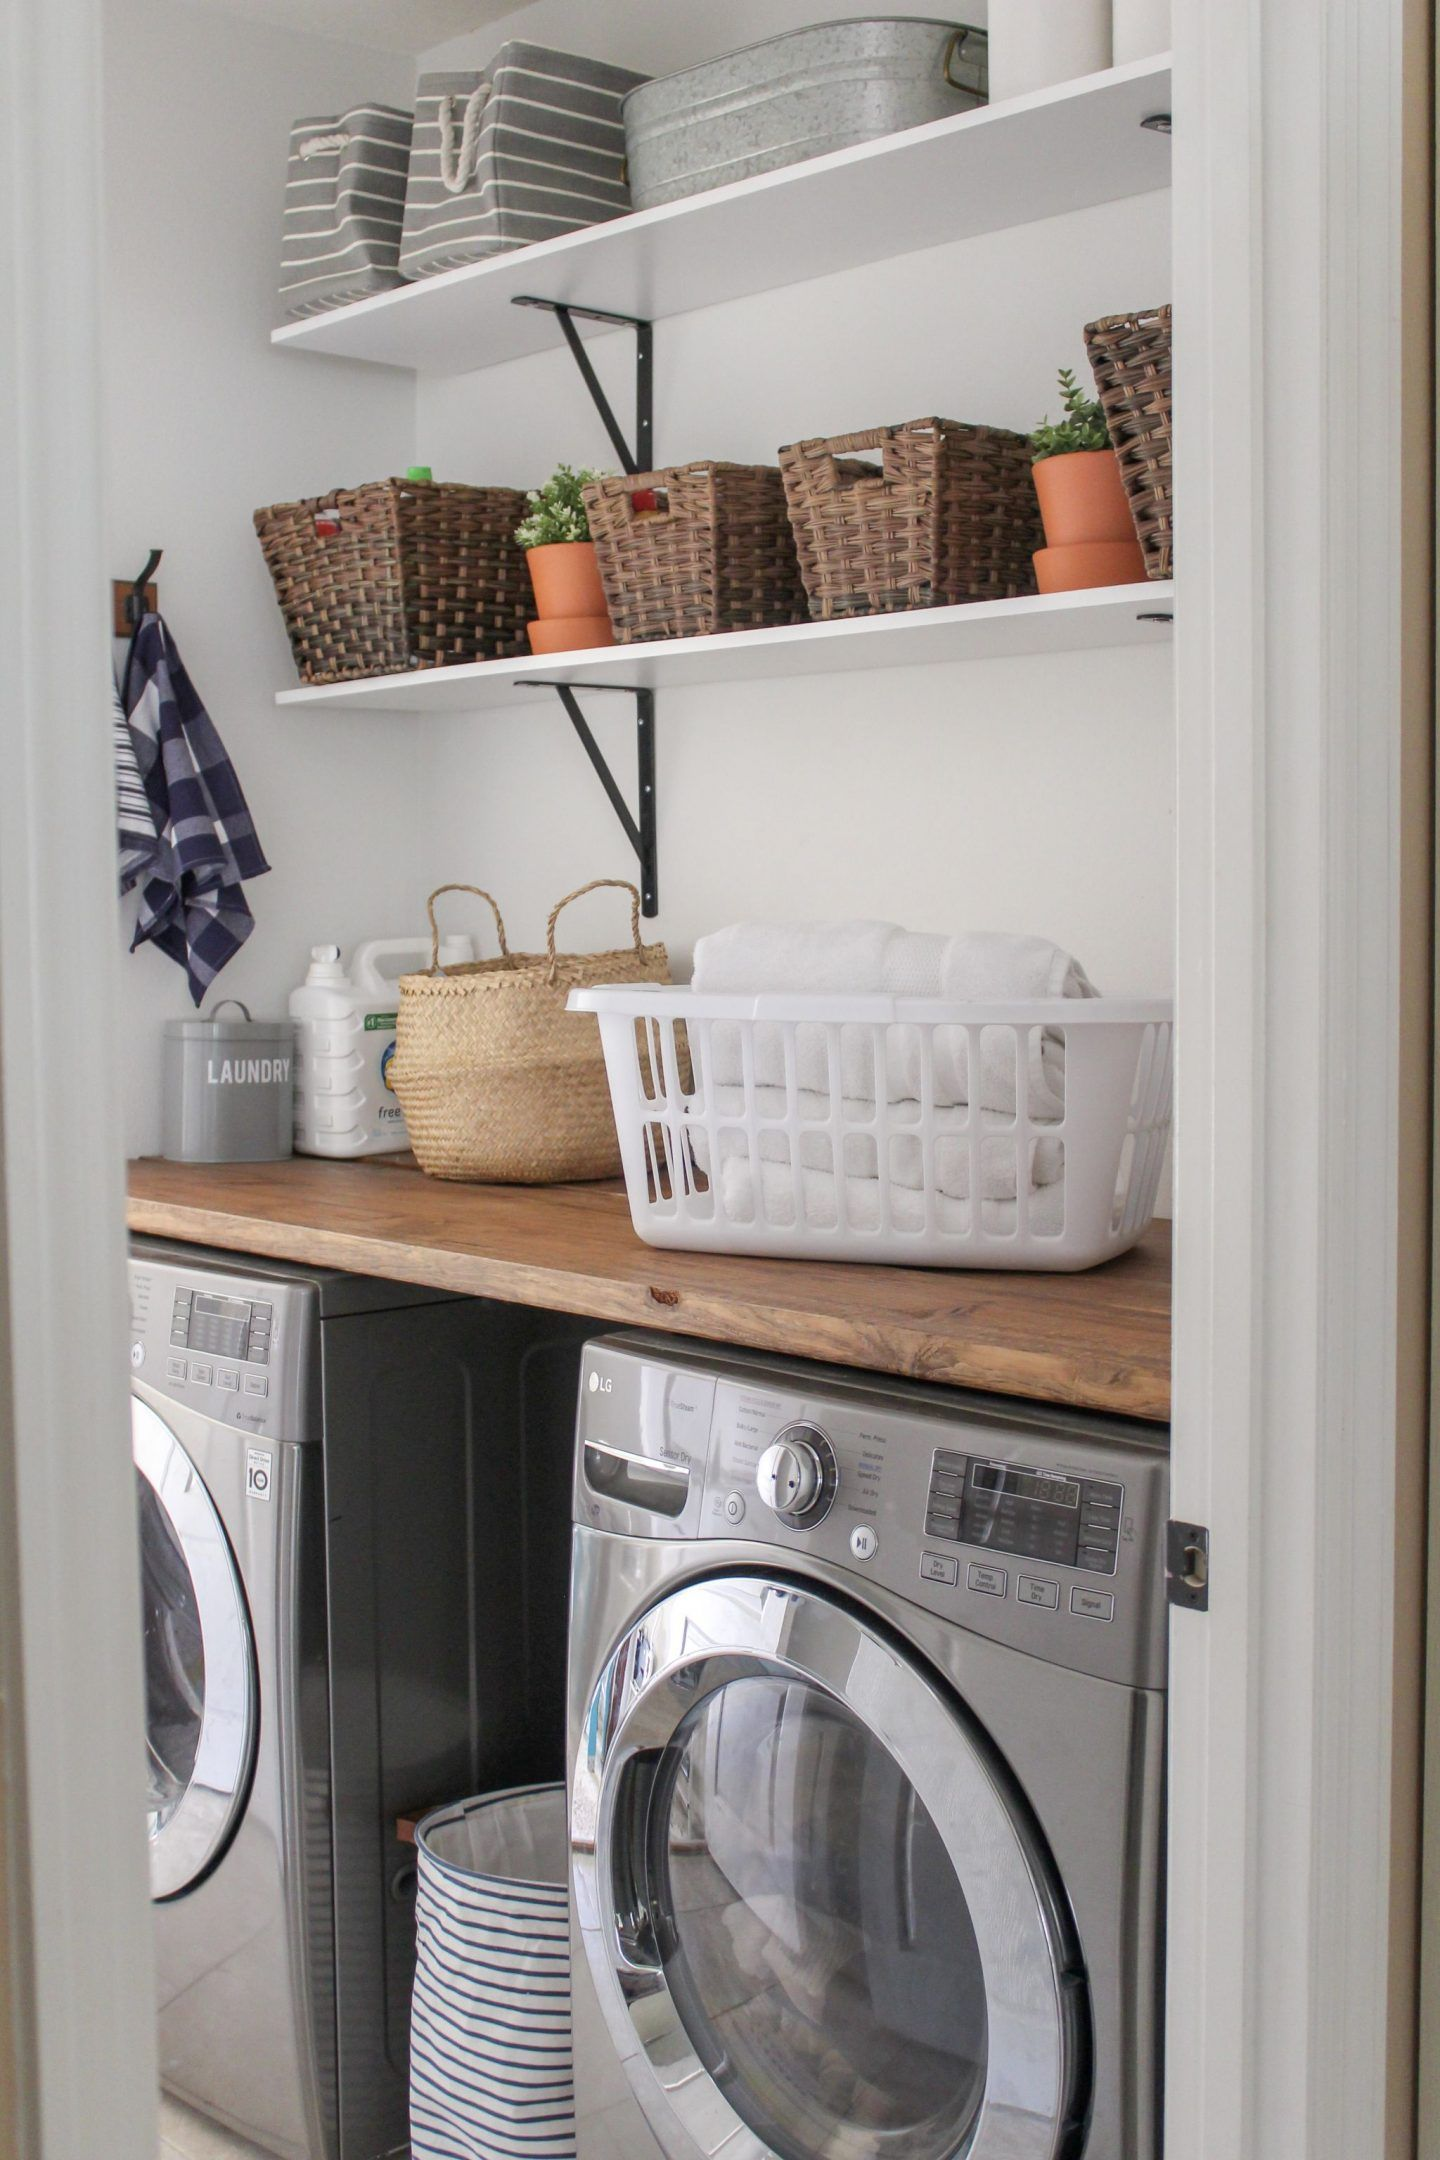 Home Tour Small Laundry Room Makeover Small Laundry Room Makeover Room Makeover Small Laundry Rooms